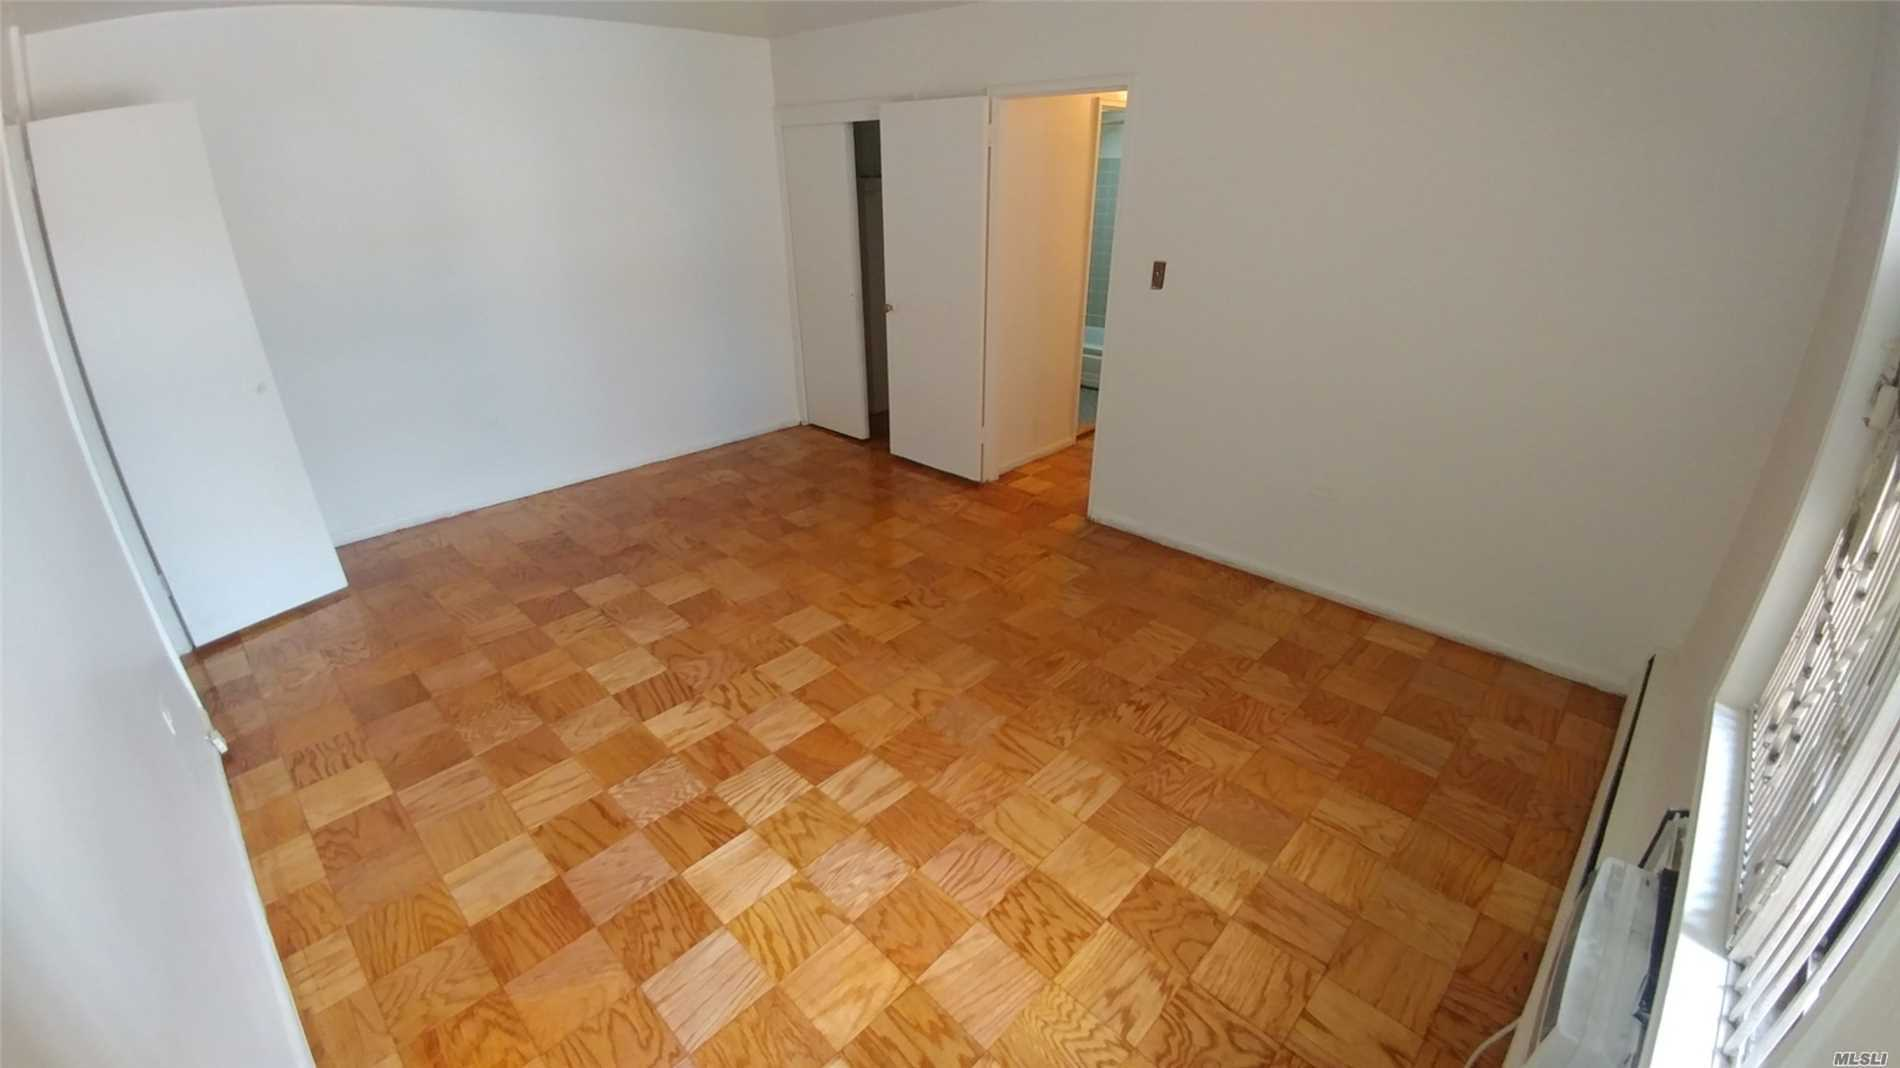 Great Deal On Sherwood Village Xlg 1Br In Very Good Condition. Conveniently Located In The Heart Of Major Shopping District, Just 10 Blocks To M/R, Q72 On Corner. Huge Living Room & Master Br, Spacious Alcove Usable As A Flex Convertible Room, Incredible Closet Space, Deep Eat-In-Kitchen. Newly Painted, Polished Floors. Tremendous Upside Opportunity. Electricity And All Utilities Included In $714 Monthly Maintenance. 100% Owner Occupied.